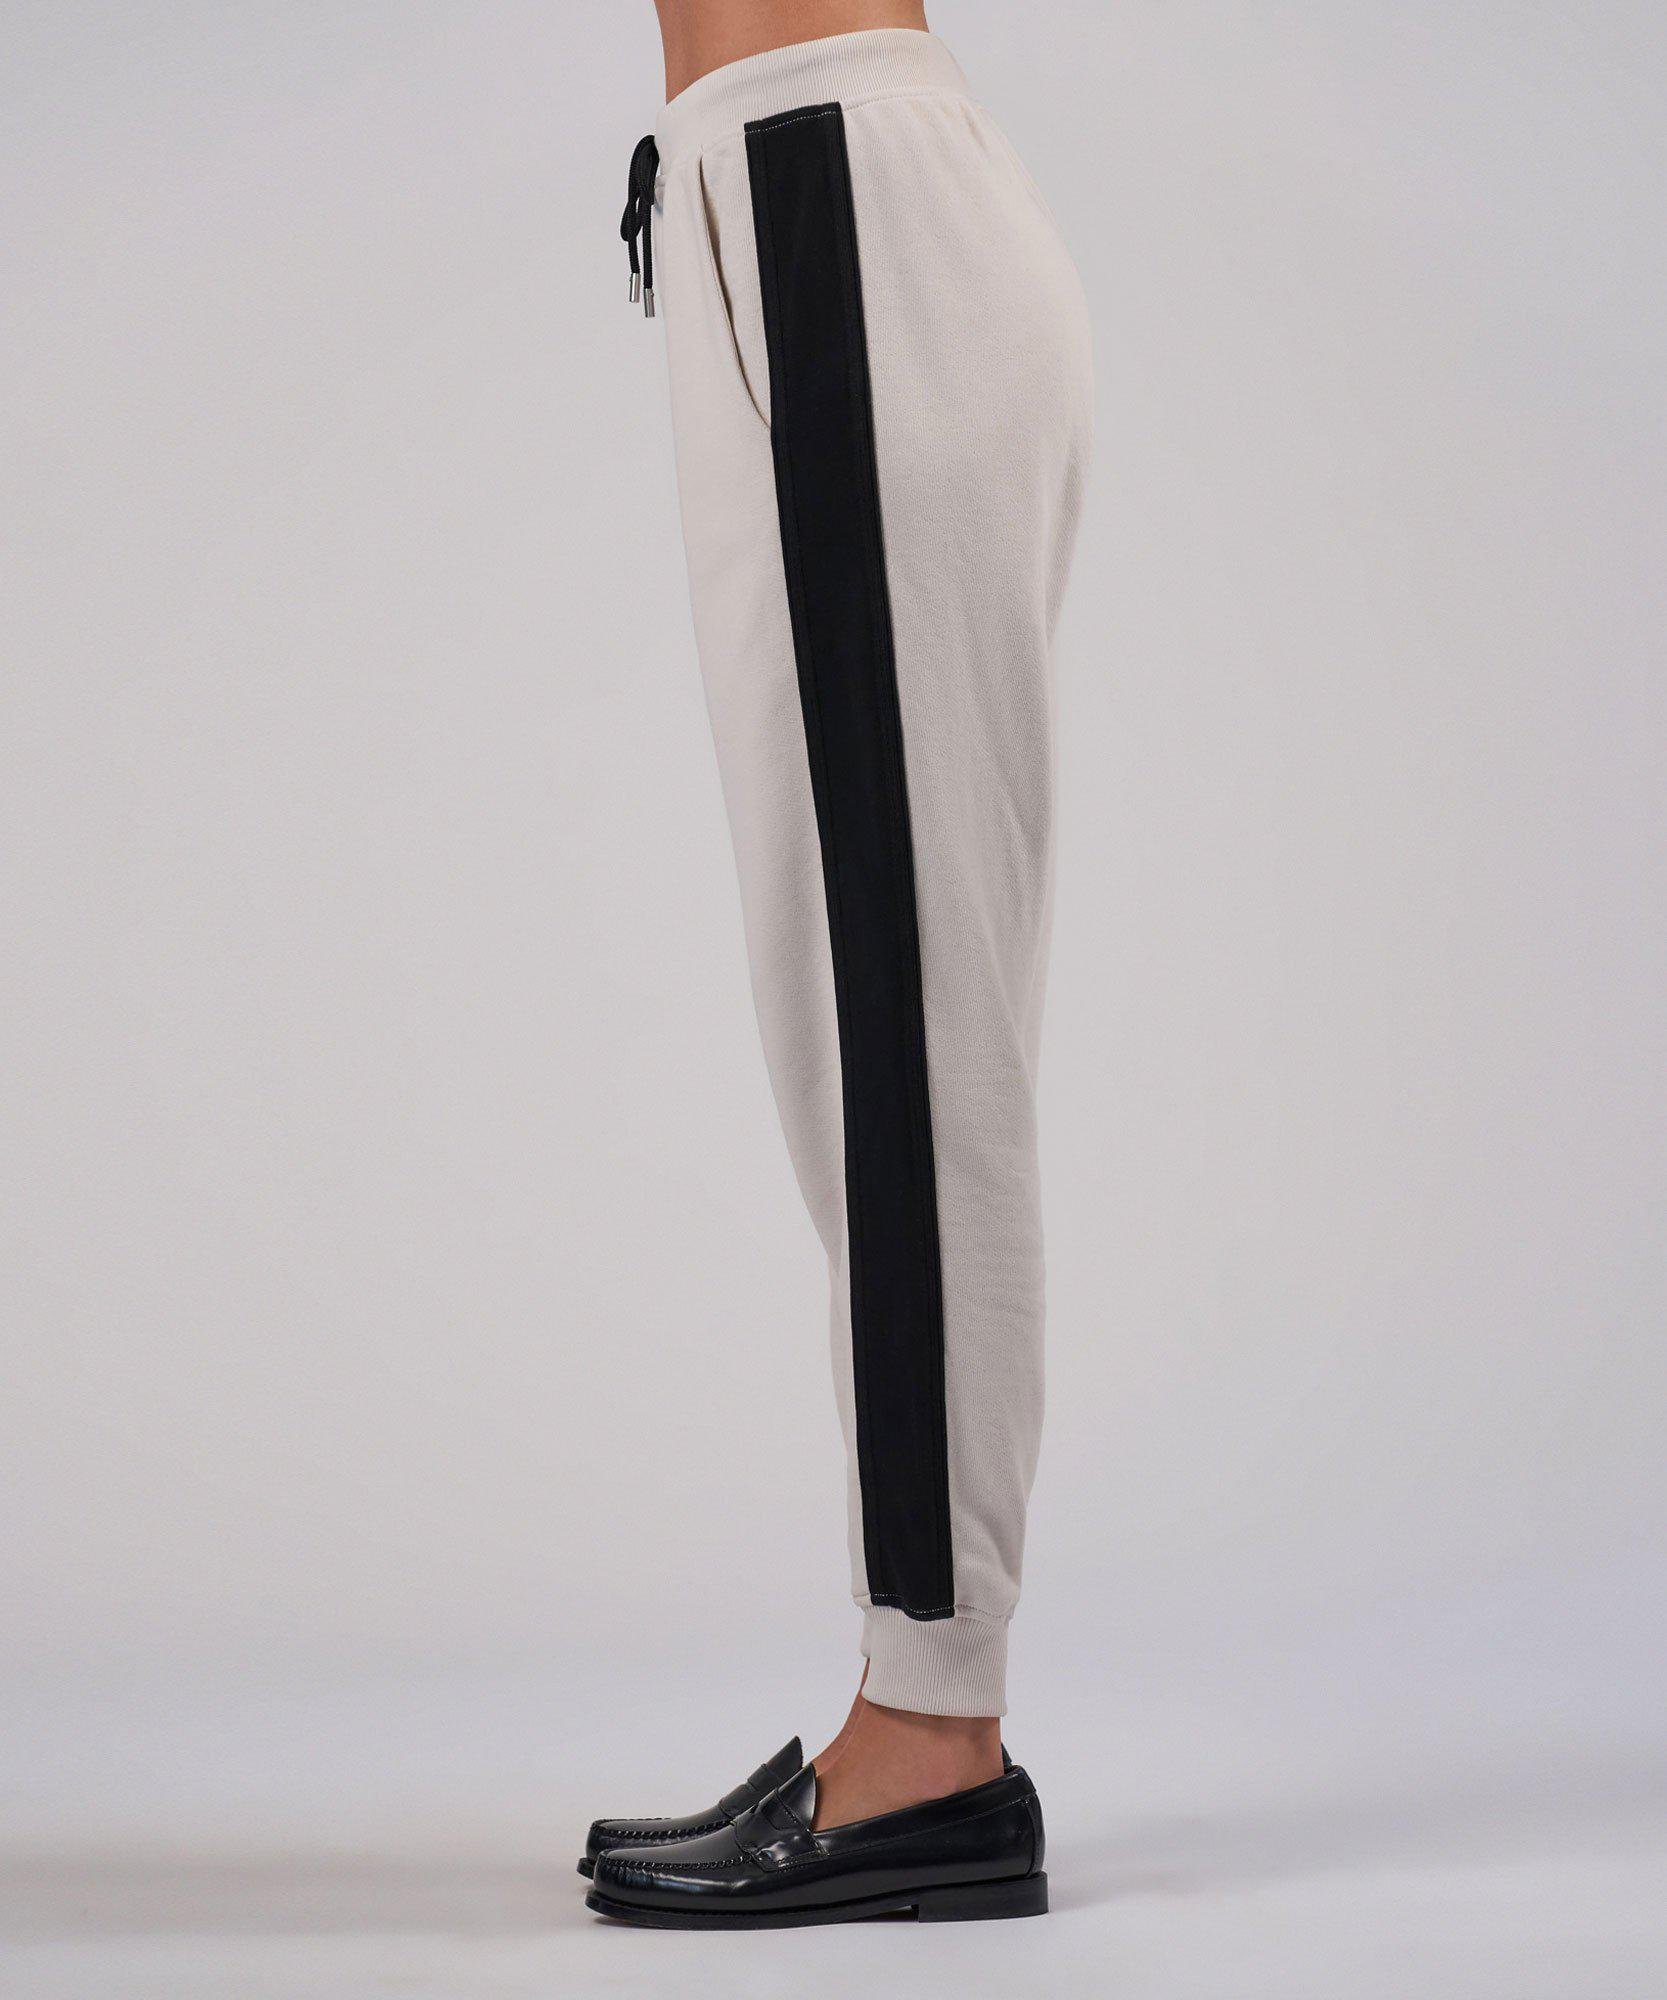 French Terry Racing Stripe Pull-On Pants - Tan Combo 1